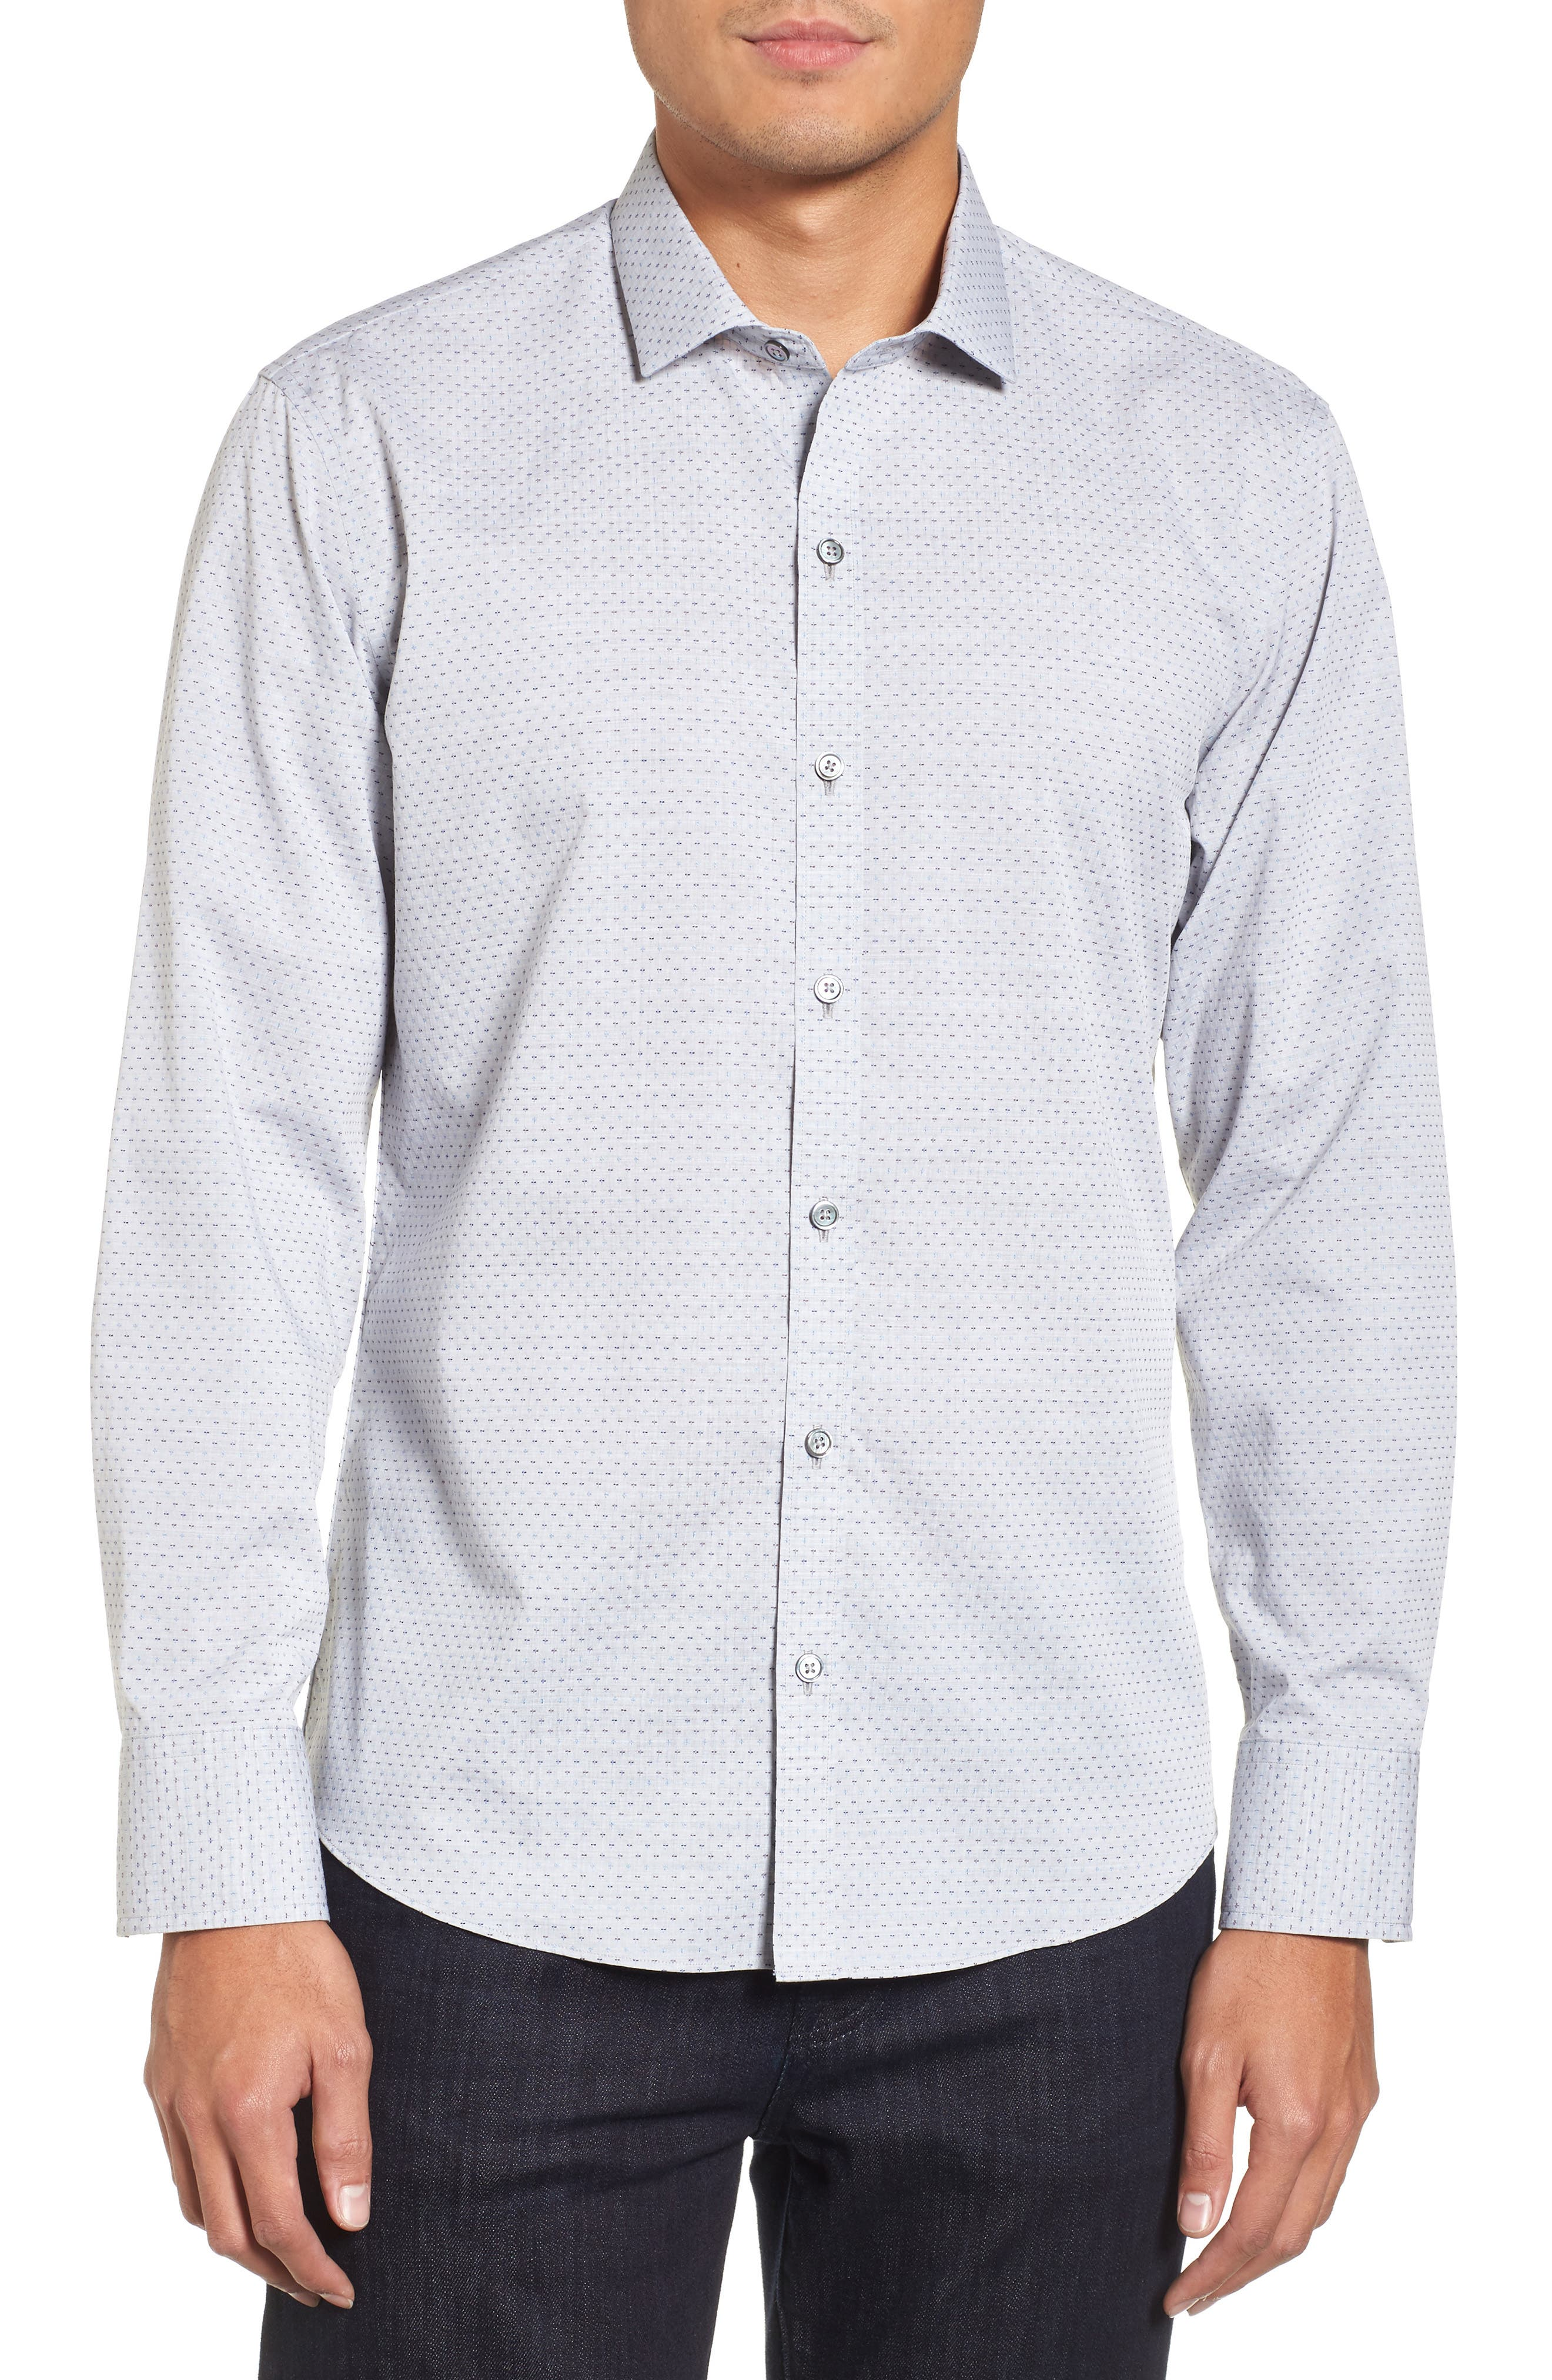 Atila Slim Fit Dobby Woven Sport Shirt,                         Main,                         color, 050